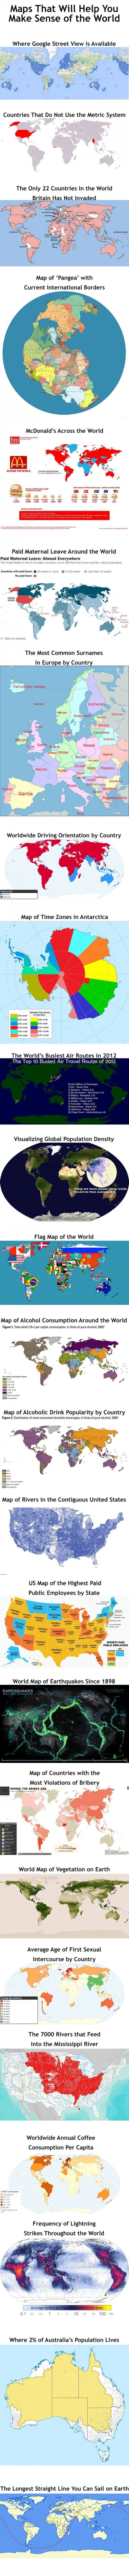 Maps to make sense of the world